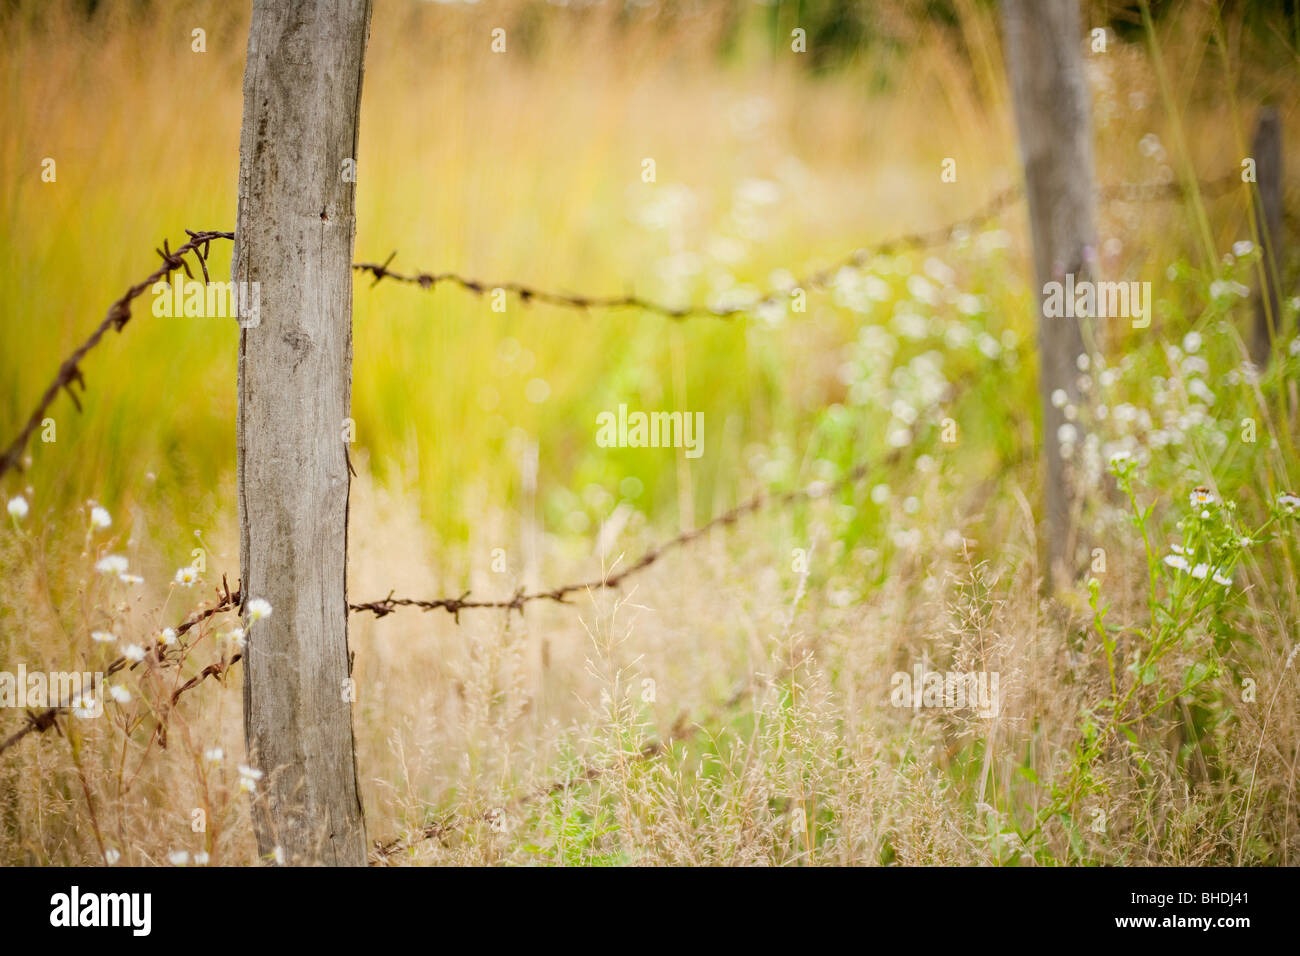 Fence made of poles with barbed wire - Stock Image